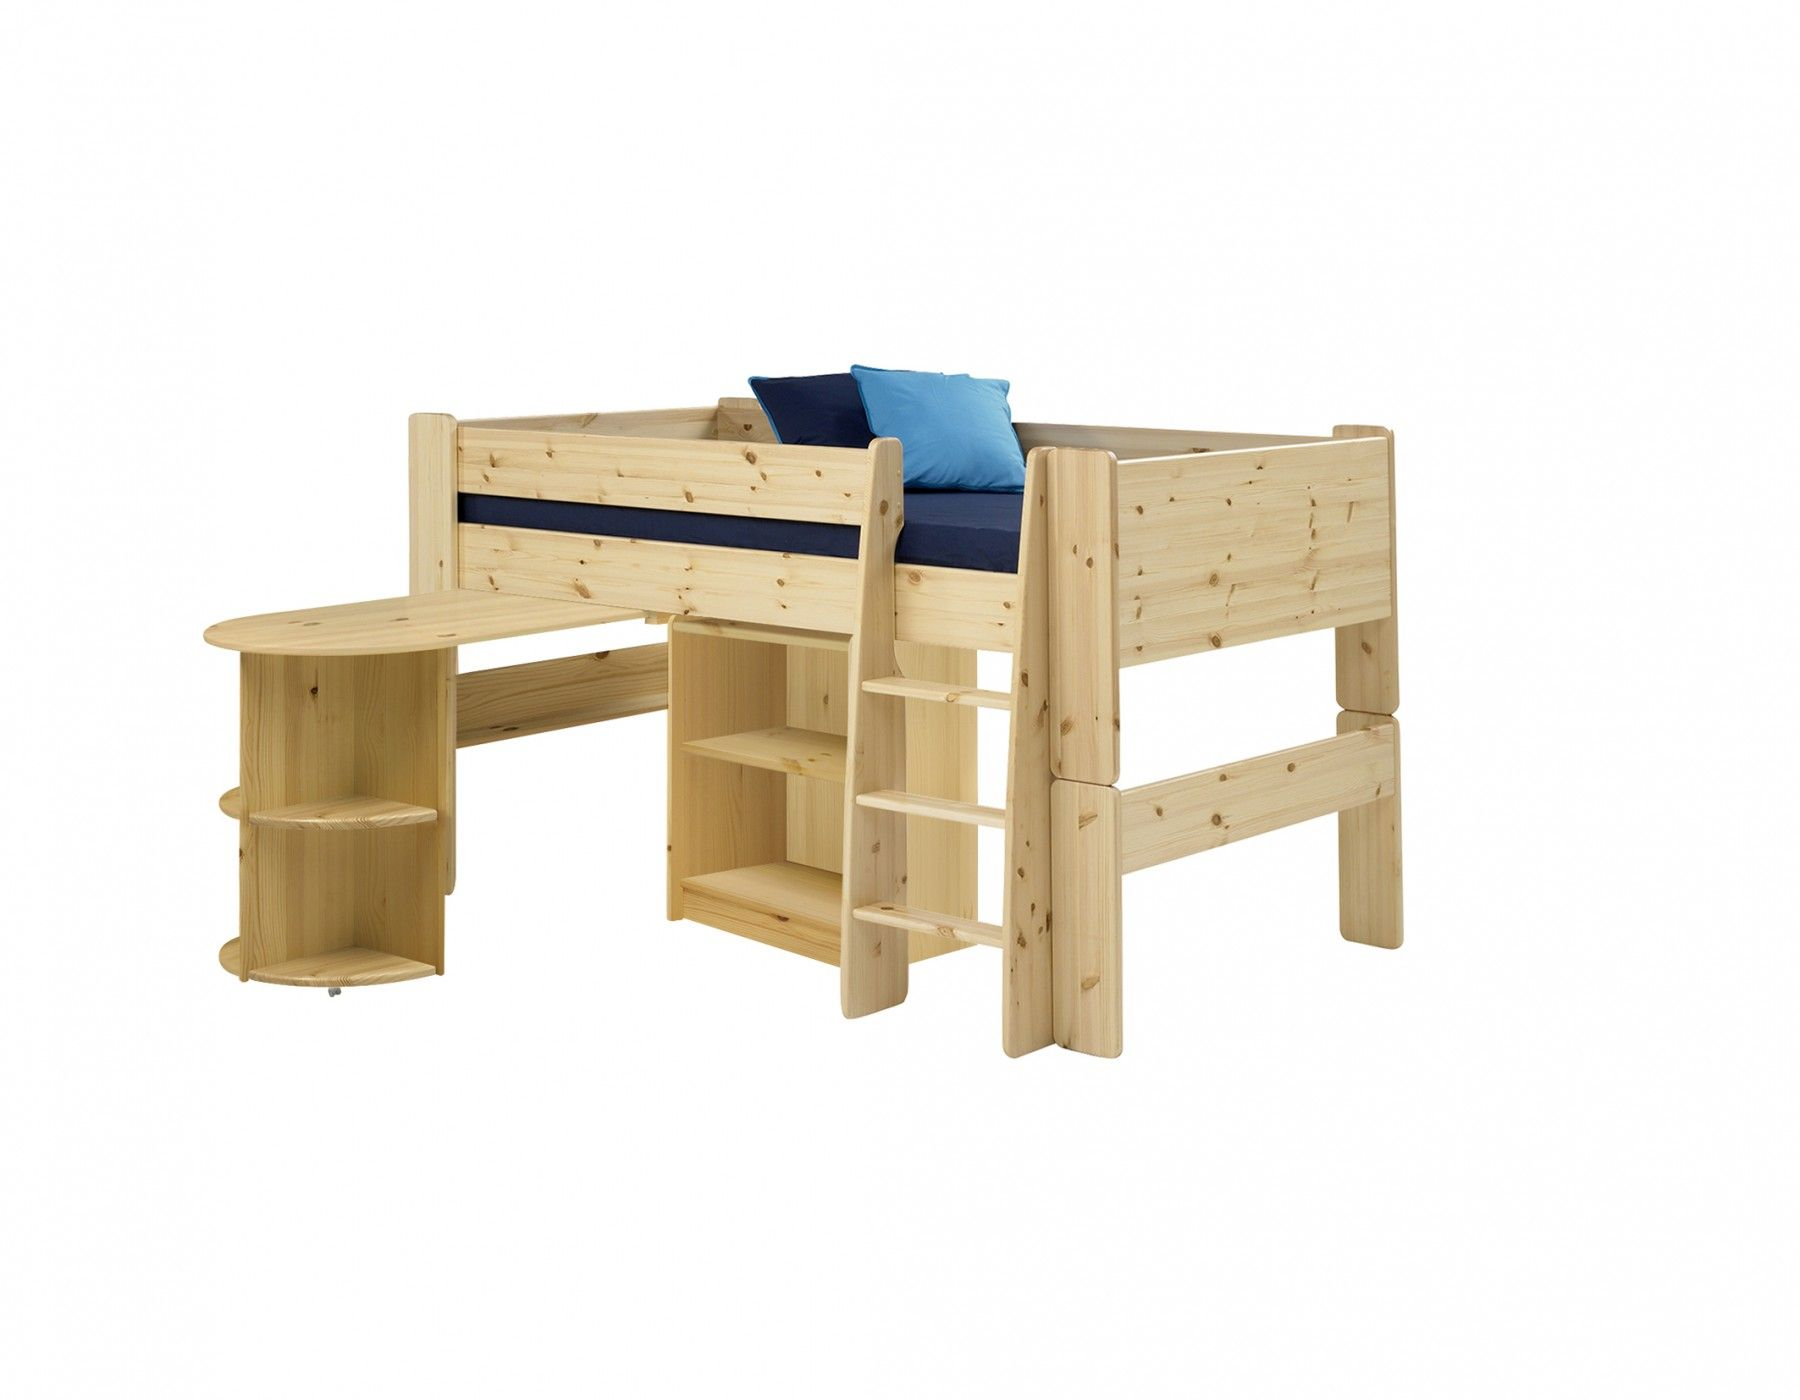 Steens For Kids Steens For Kids Mid Sleeper Frame With Pull Out Desk In Pine The